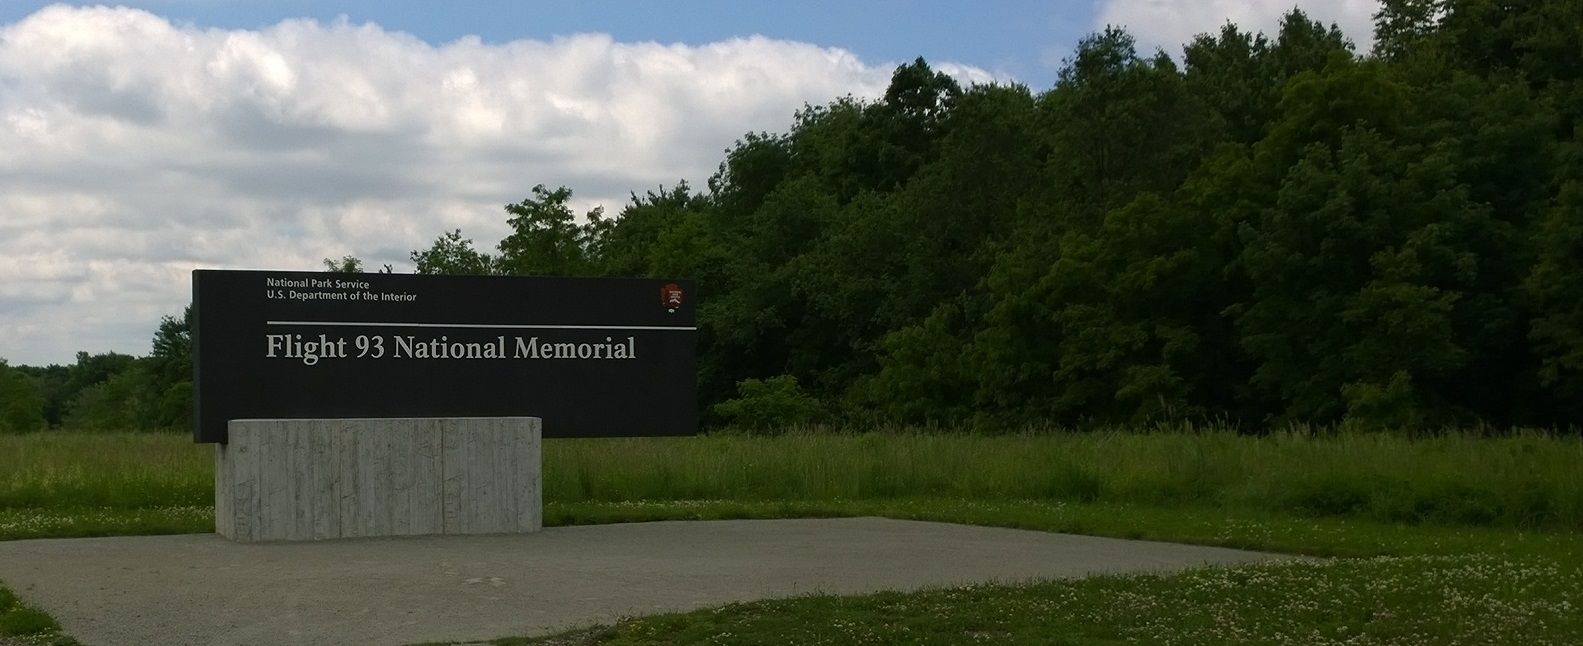 Motorcycle ride to the 9/11, Flight 93 Memorial and National Park